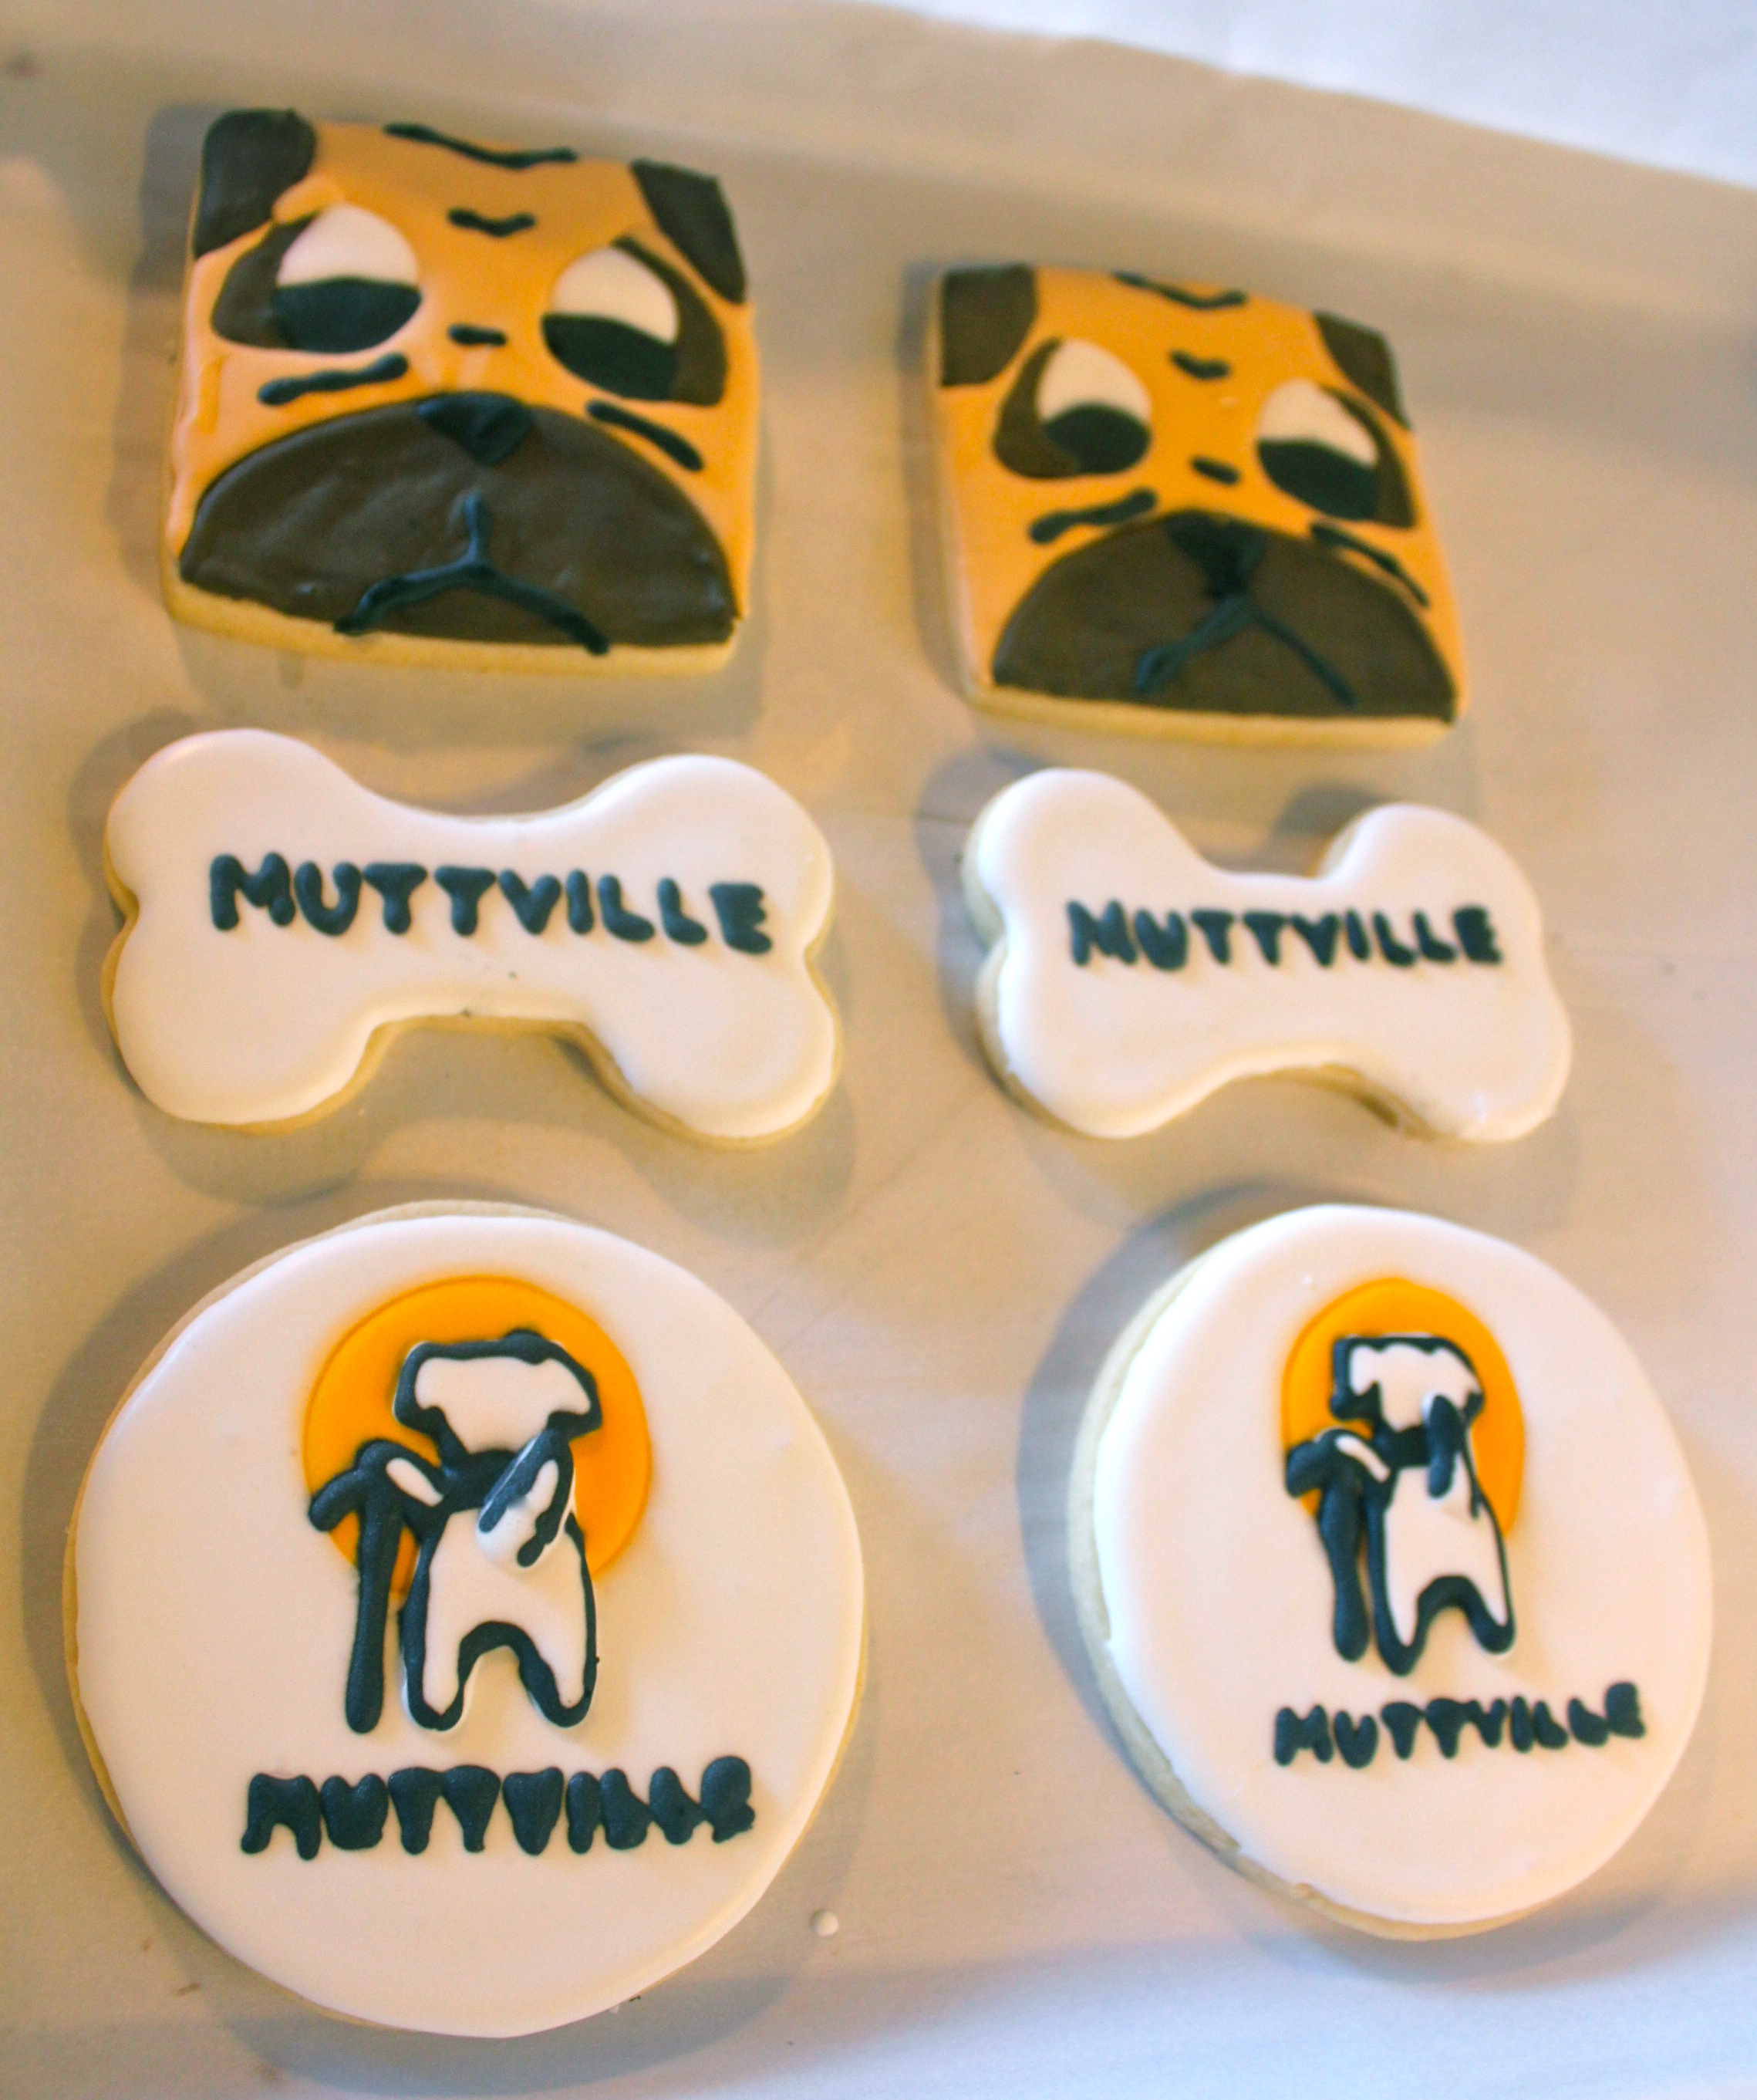 Pugs for Muttville |SugaredandIced.com